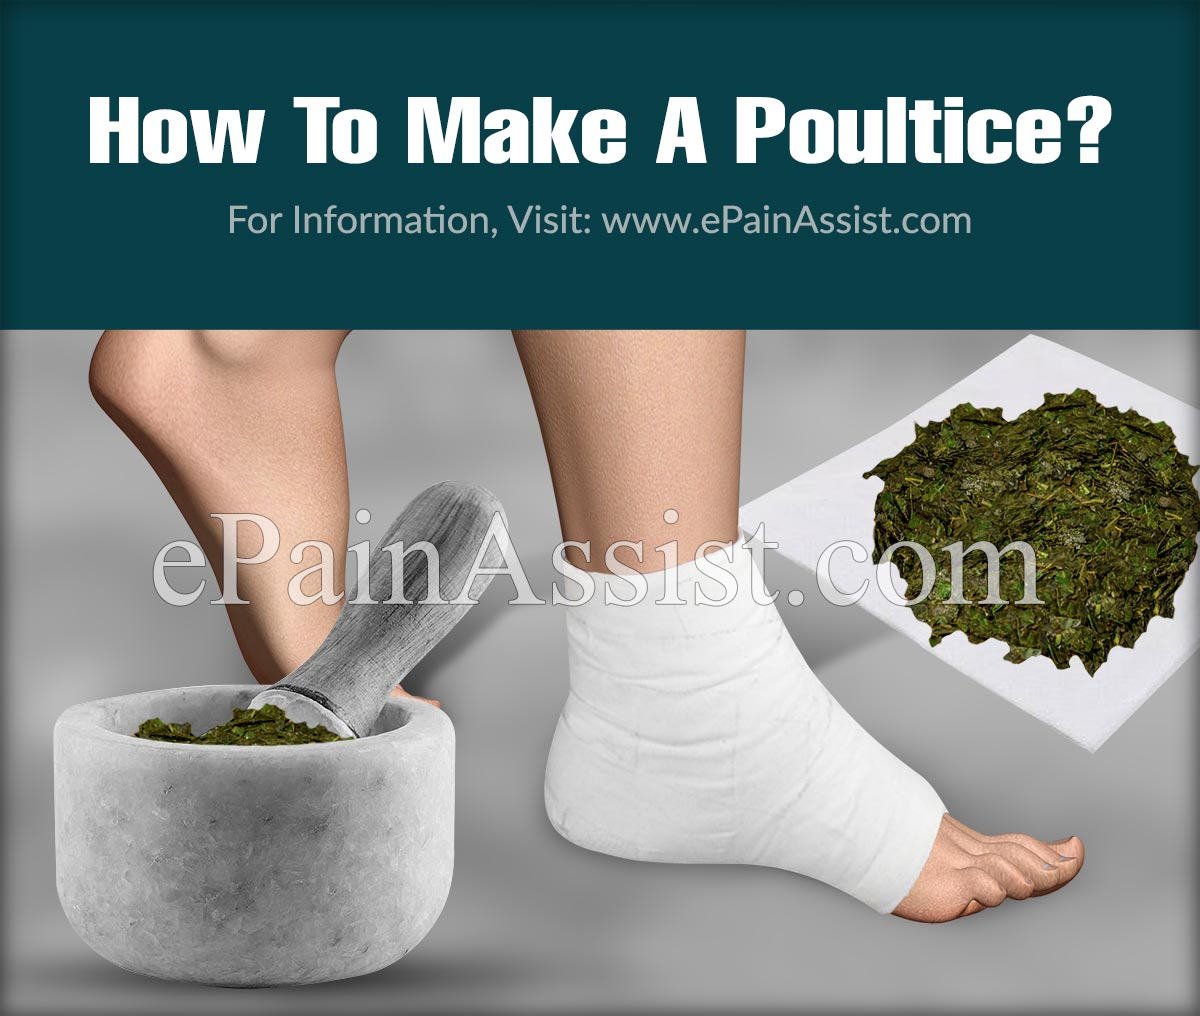 How To Make A Poultice?